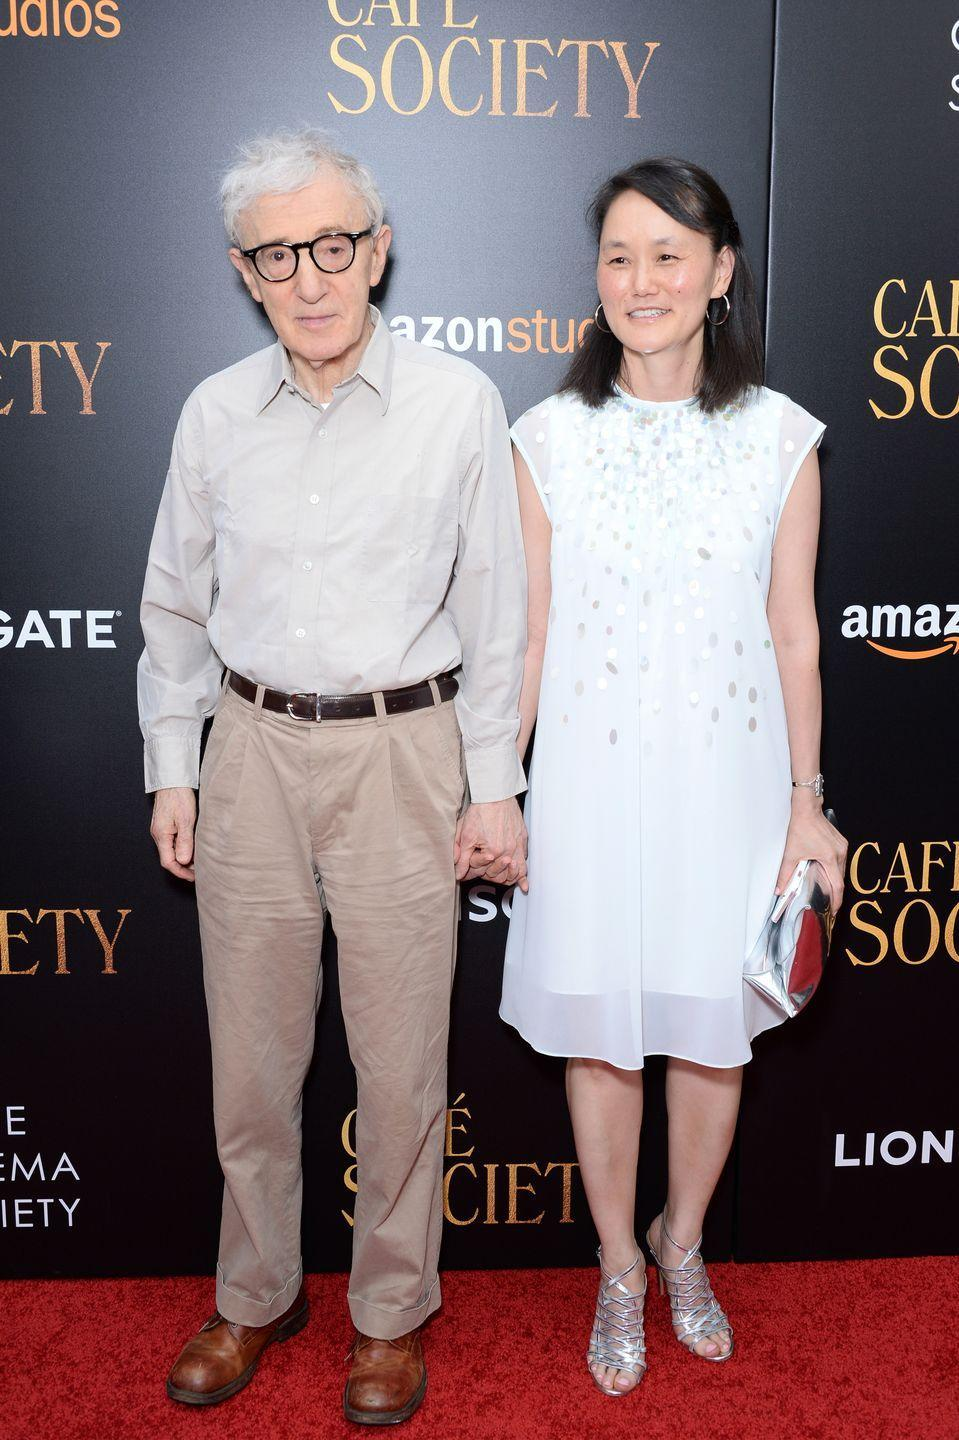 "<p>Allen began an affair with his longtime girlfriend Mia Farrow's <a href=""https://www.harpersbazaar.com.au/celebrity/scandalous-celebrity-affairs-15060"" rel=""nofollow noopener"" target=""_blank"" data-ylk=""slk:adoptive daughter"" class=""link rapid-noclick-resp"">adoptive daughter</a> in 1992. The scandal was revealed when Farrow found nude photos of Previn that were taken by Allen. Though he was highly criticized, the director still decided to marry Previn in 1997.</p>"